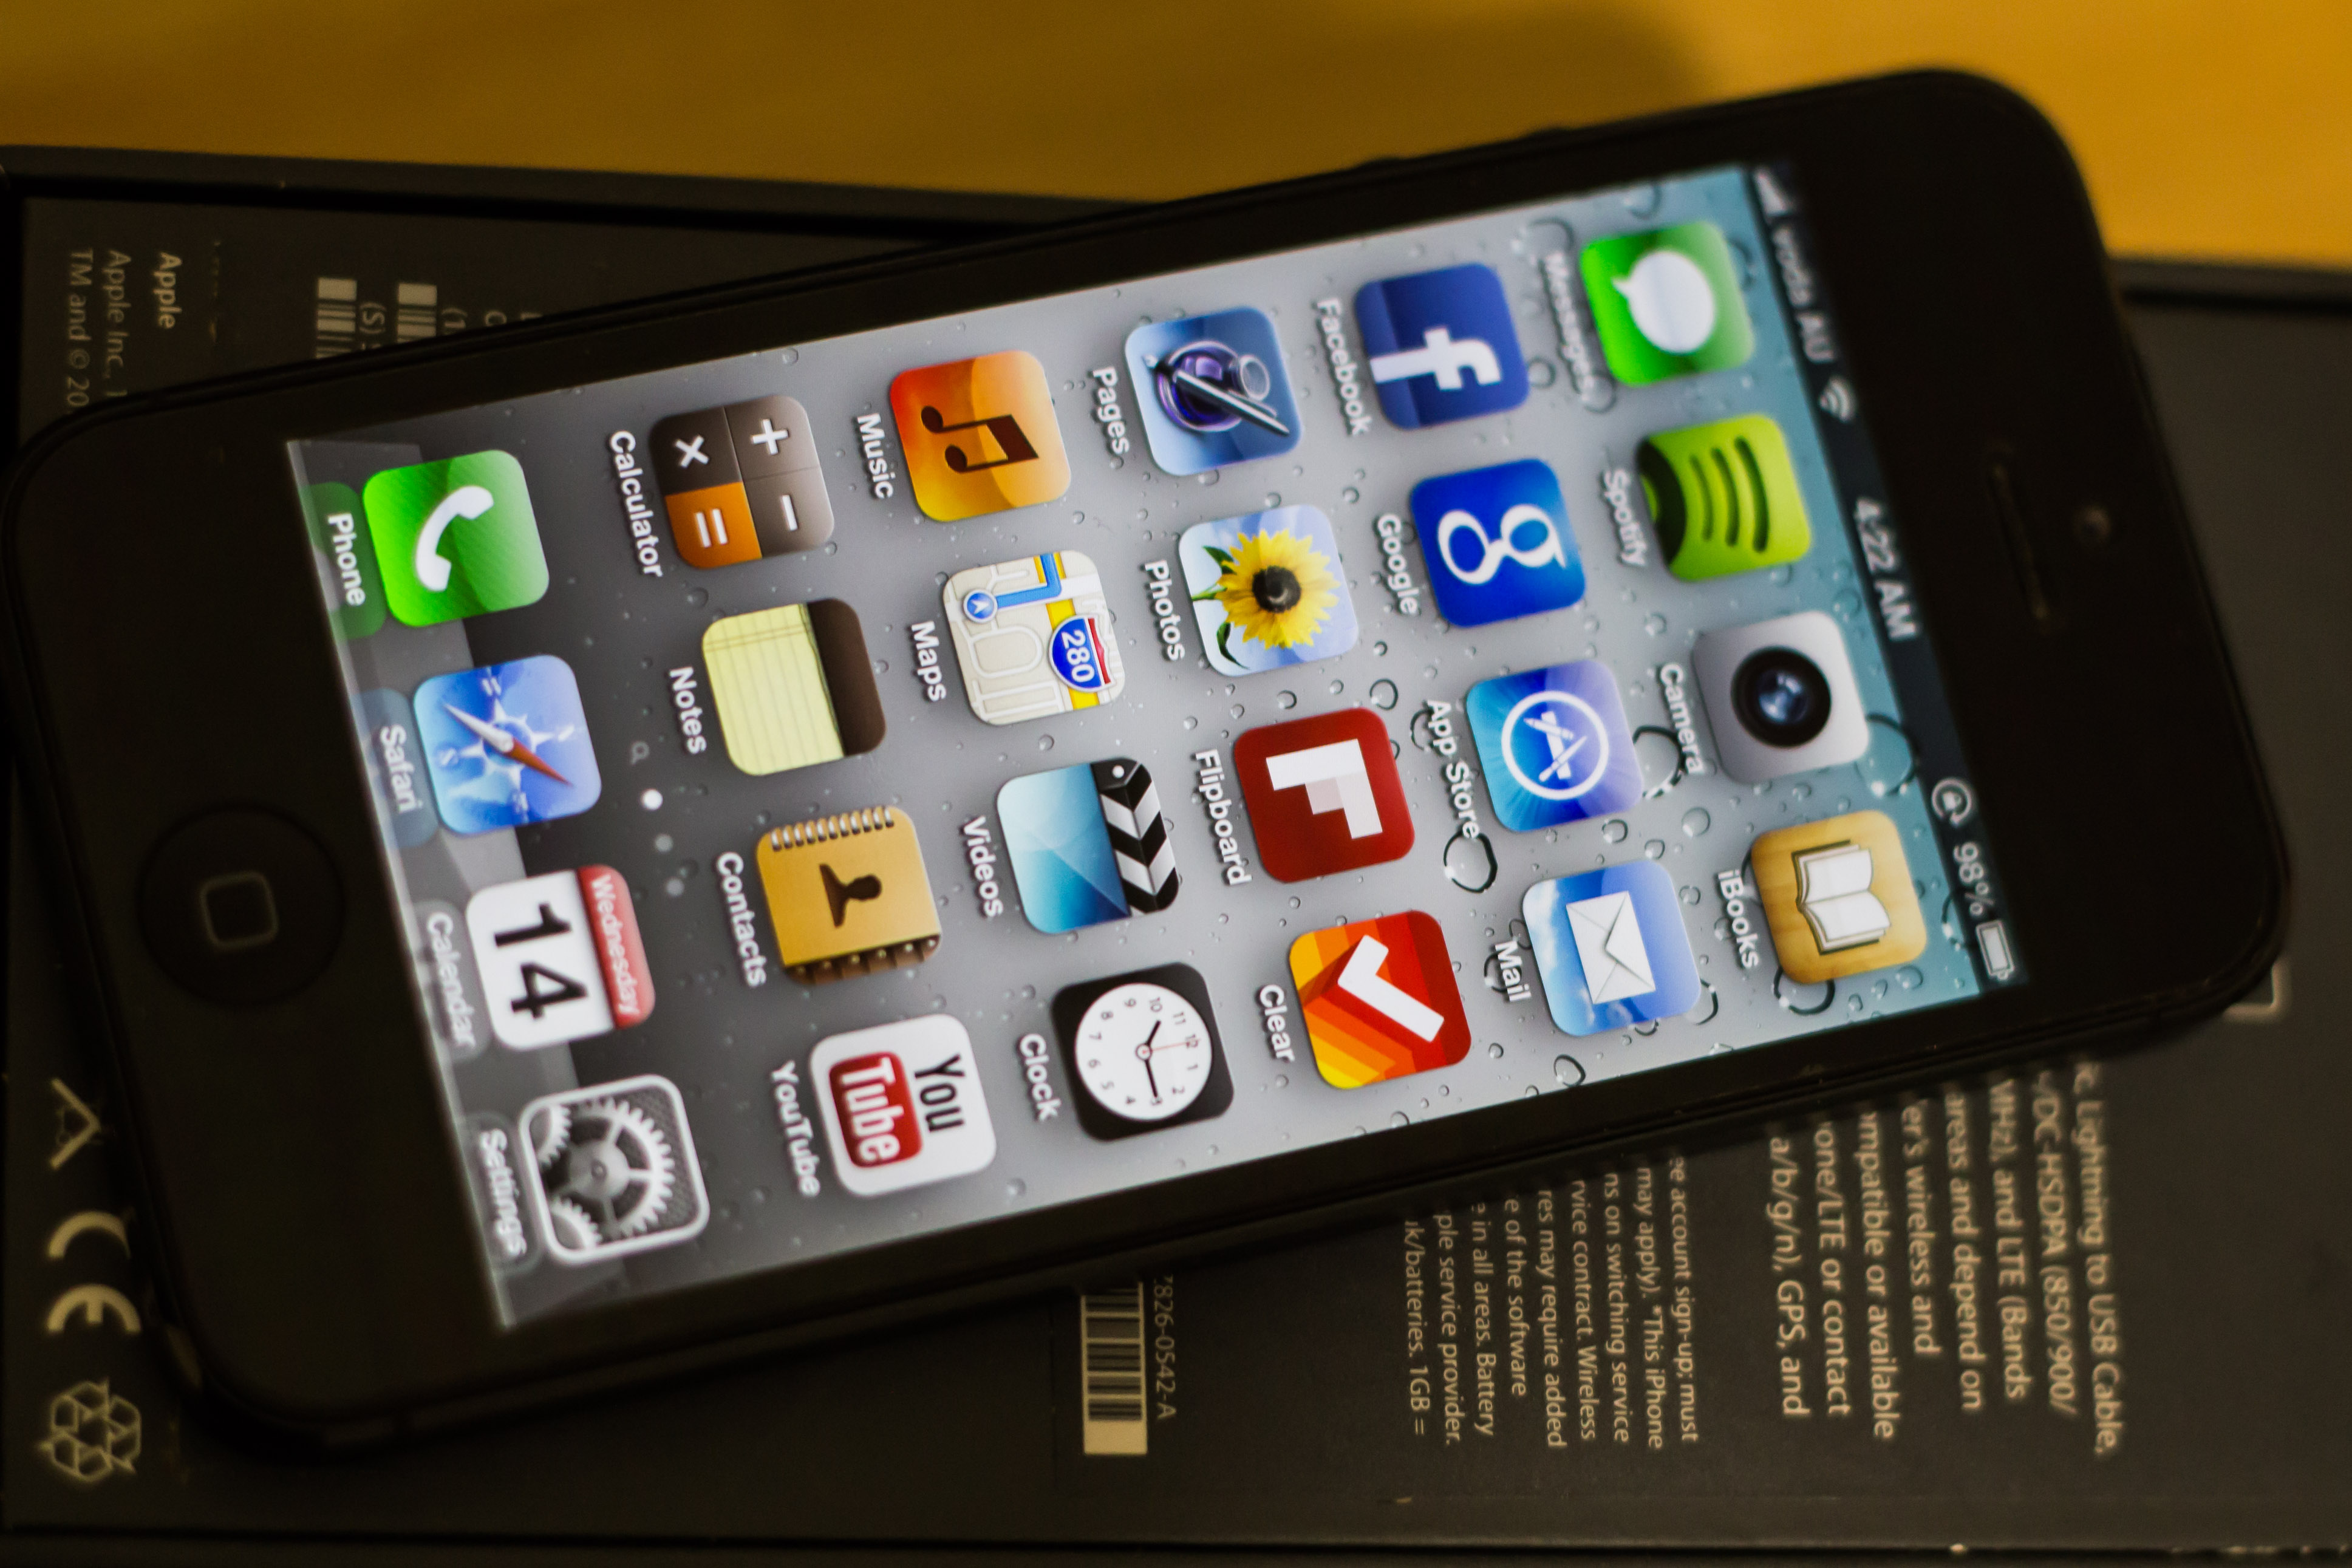 iPhone 5 64gb Factory Unlocked Call or Txt 01751939137 | ClickBD large image 0